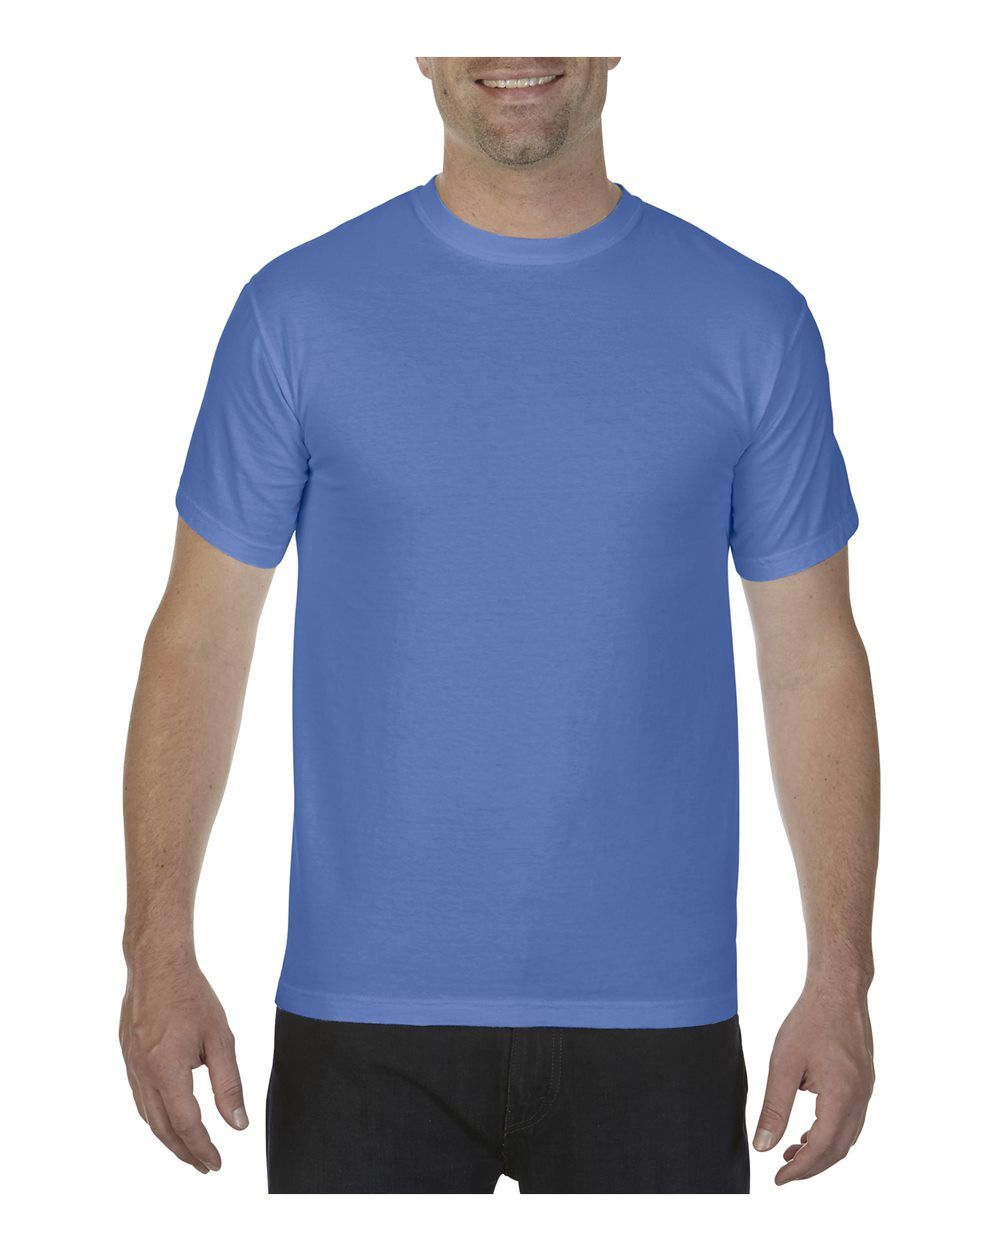 Comfort Colors - Garment-Dyed Heavyweight T-Shirt - 1717 | Clothing Shop Online | Comfort Colors - Garment-Dyed Heavyweight T-Shirt - 1717 - Neon Blue - 3X-Large